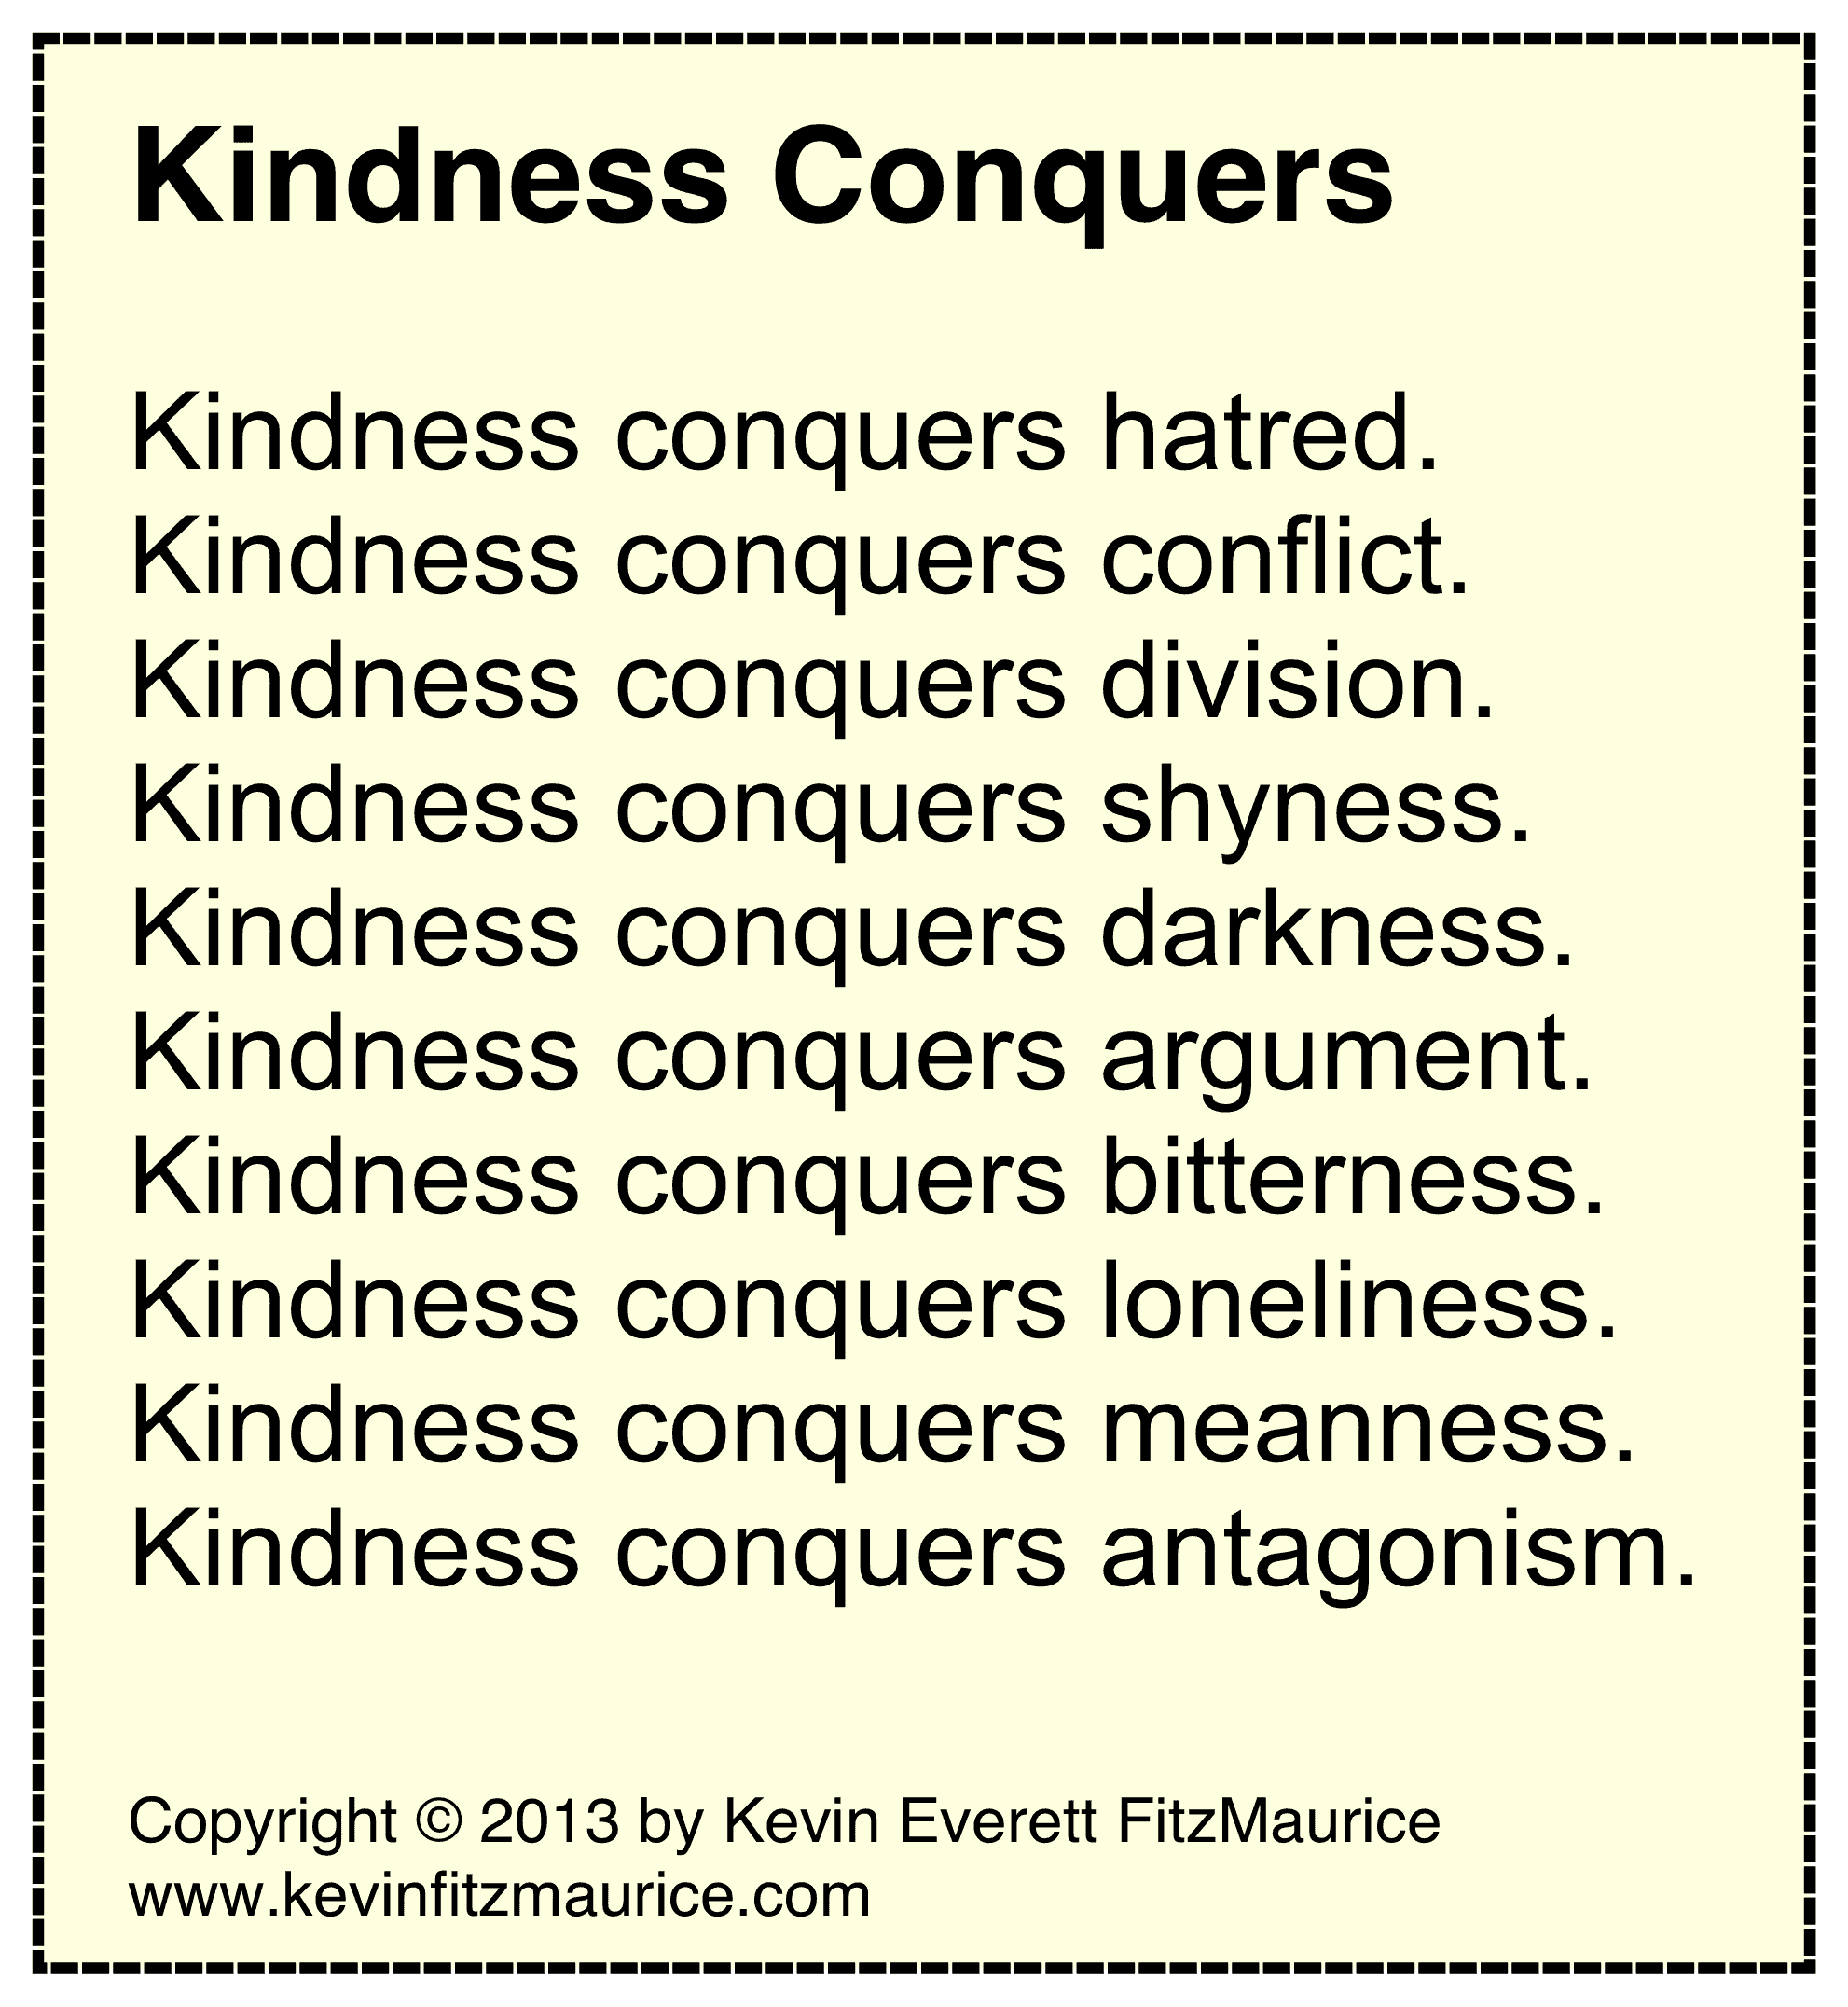 kindness conquers